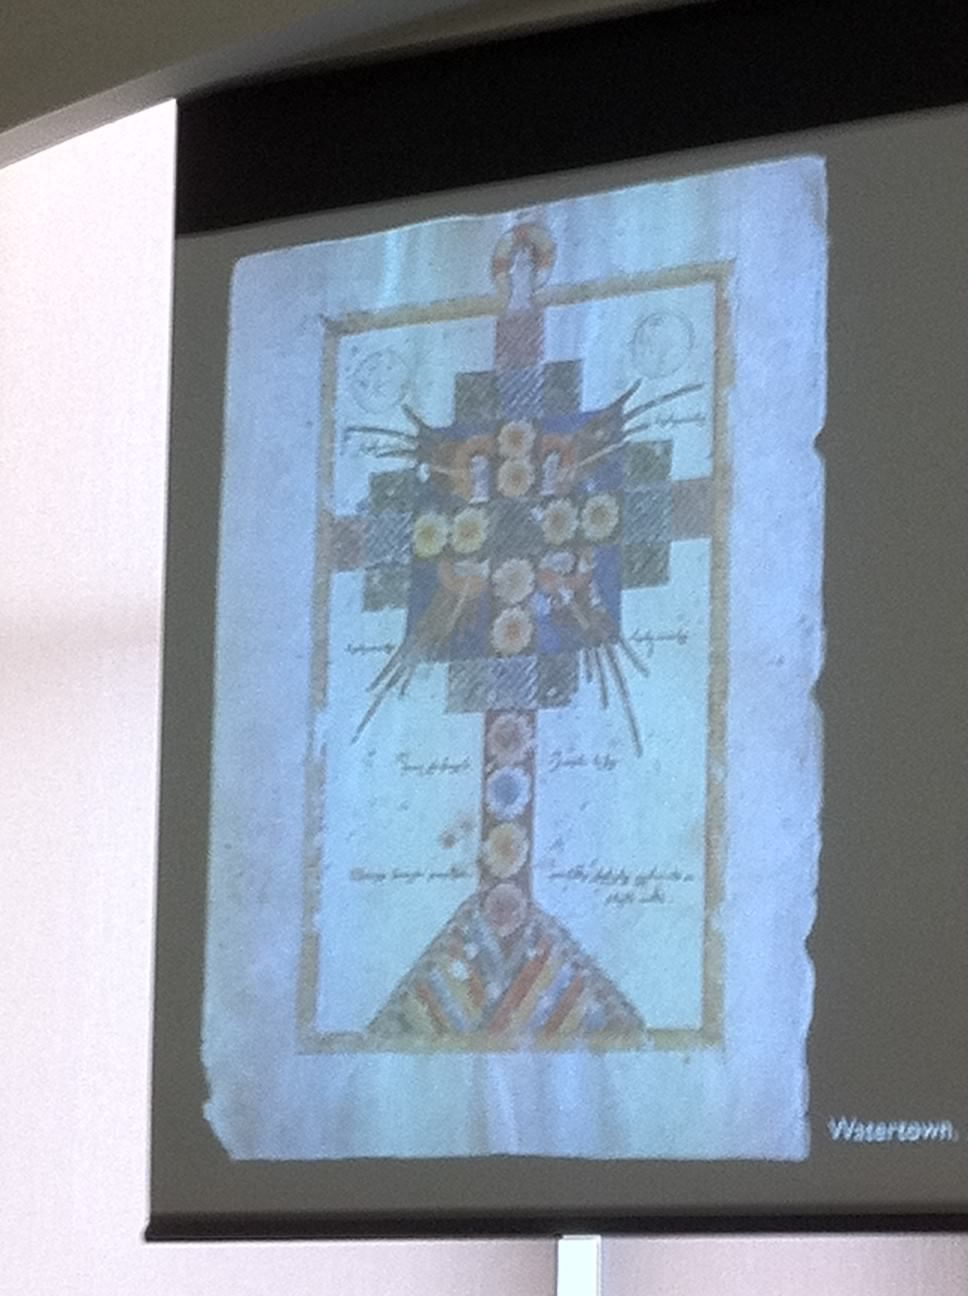 The Sign of Christ, the Sign of Salvation: an Exalted Cross in a Late Medieval Armenian Gospel Book